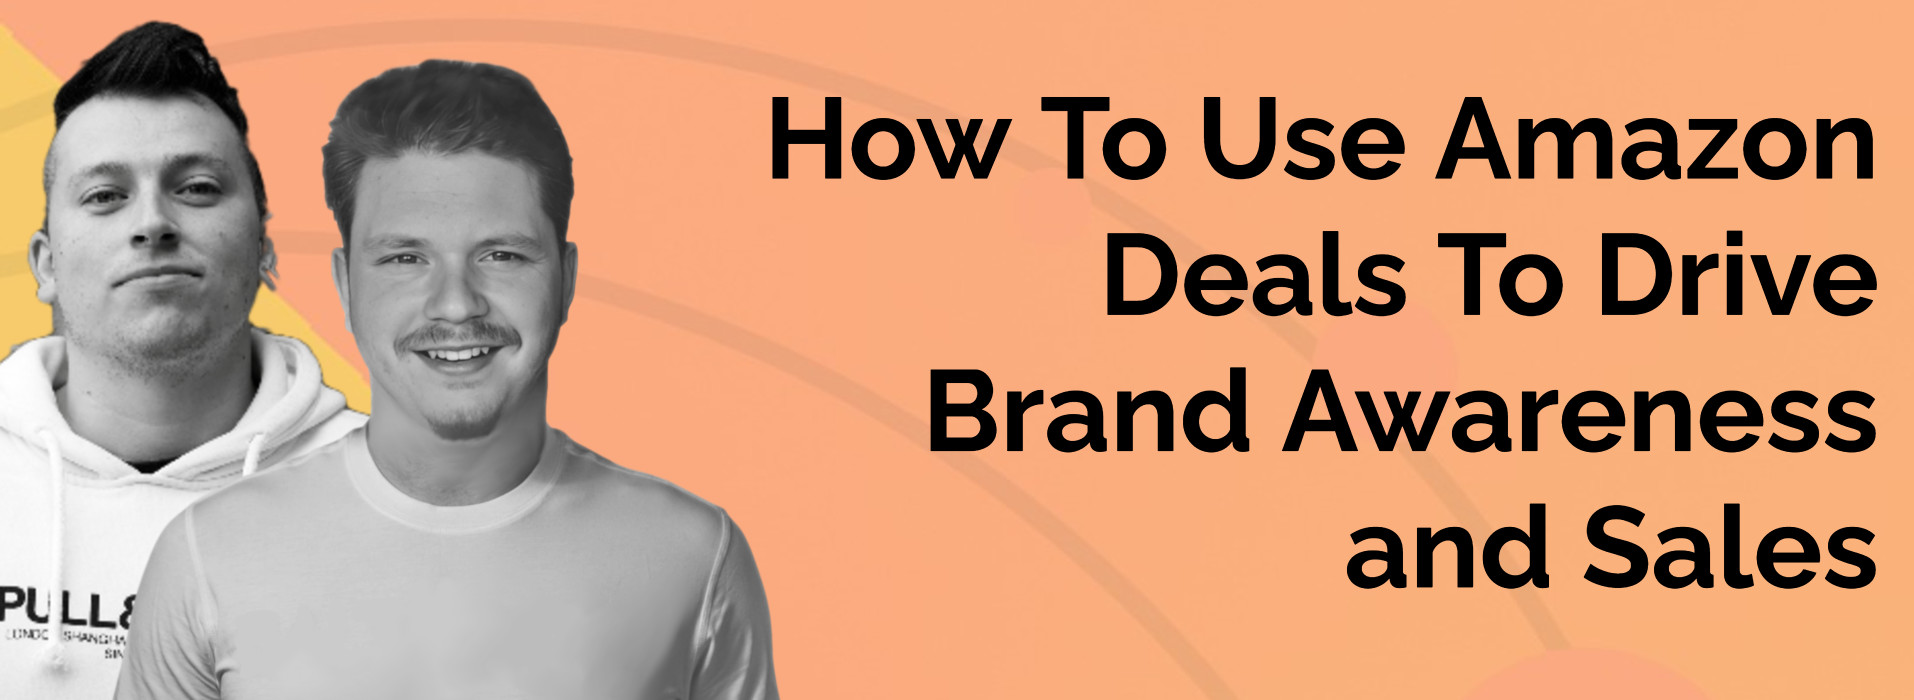 How To Use Amazon Deals To Drive Brand Awareness and Sales